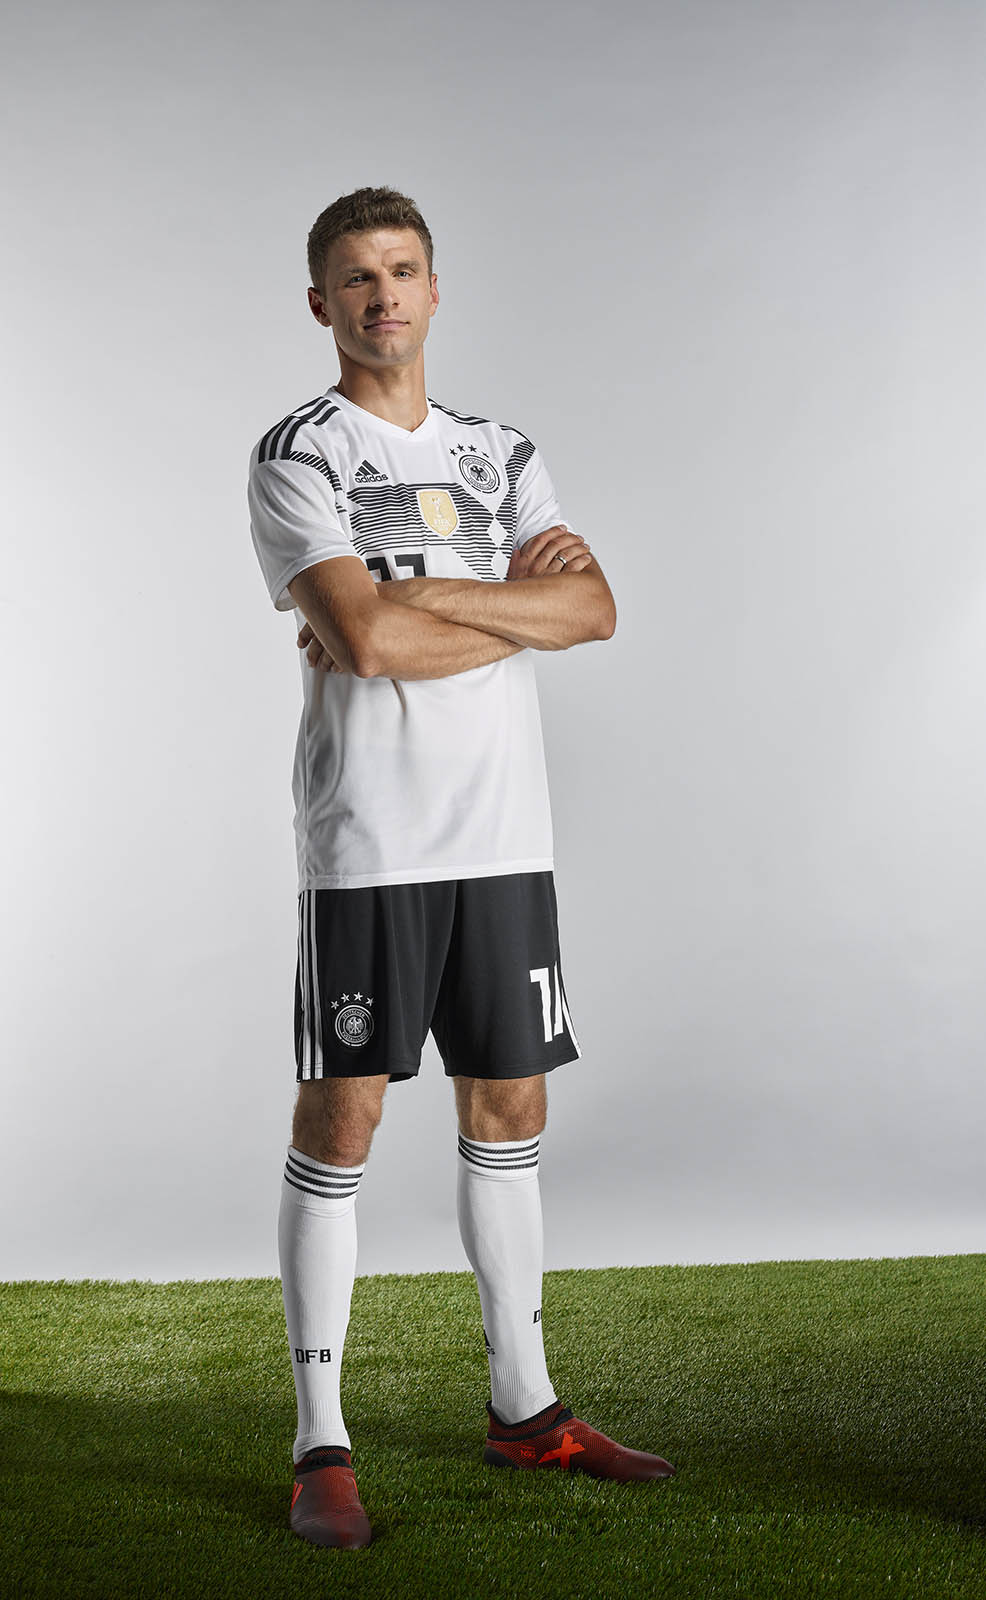 separation shoes 5b86d 4a222 2018 World Cup Germany Home Jersey Shirt